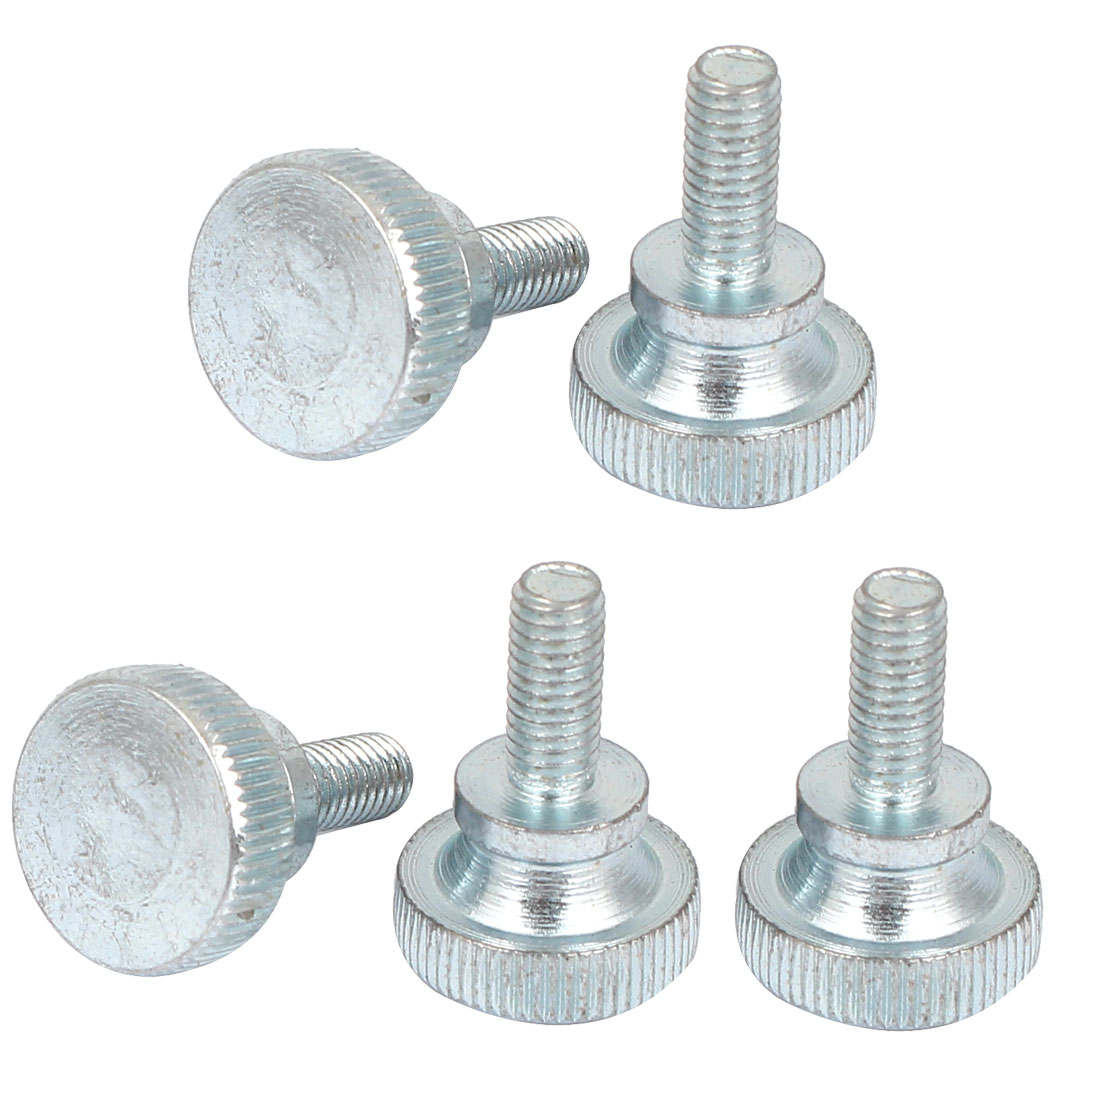 5 Pcs M5x12mm Carbon Steel Metric Flat Knurled Head Thumb Screws Bolts